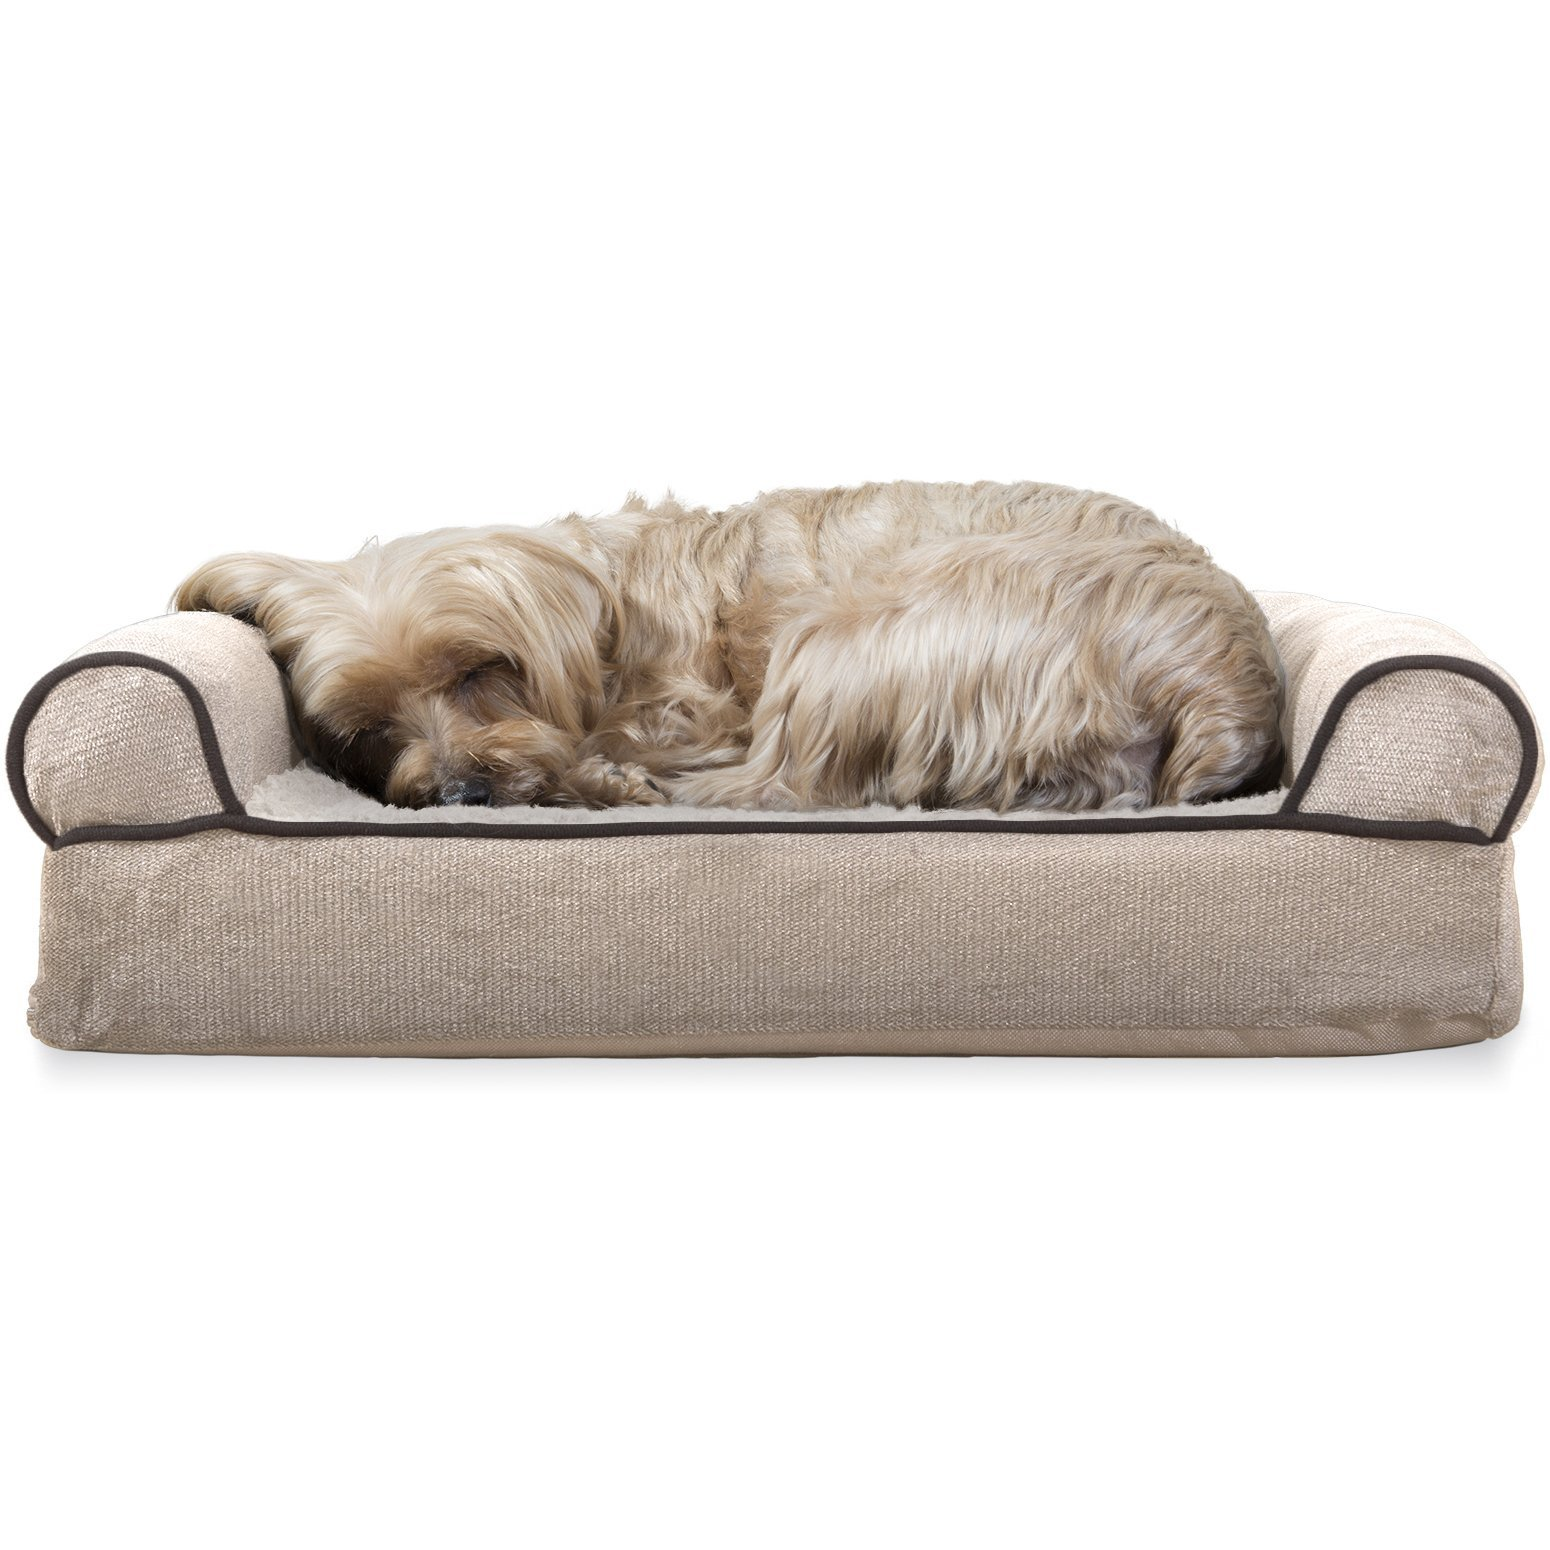 Furhaven Pet Dog Bed   Orthopedic Faux Fleece & Chenille Sofa-Style Couch Pet Bed for Dogs & Cats, Cream, Small